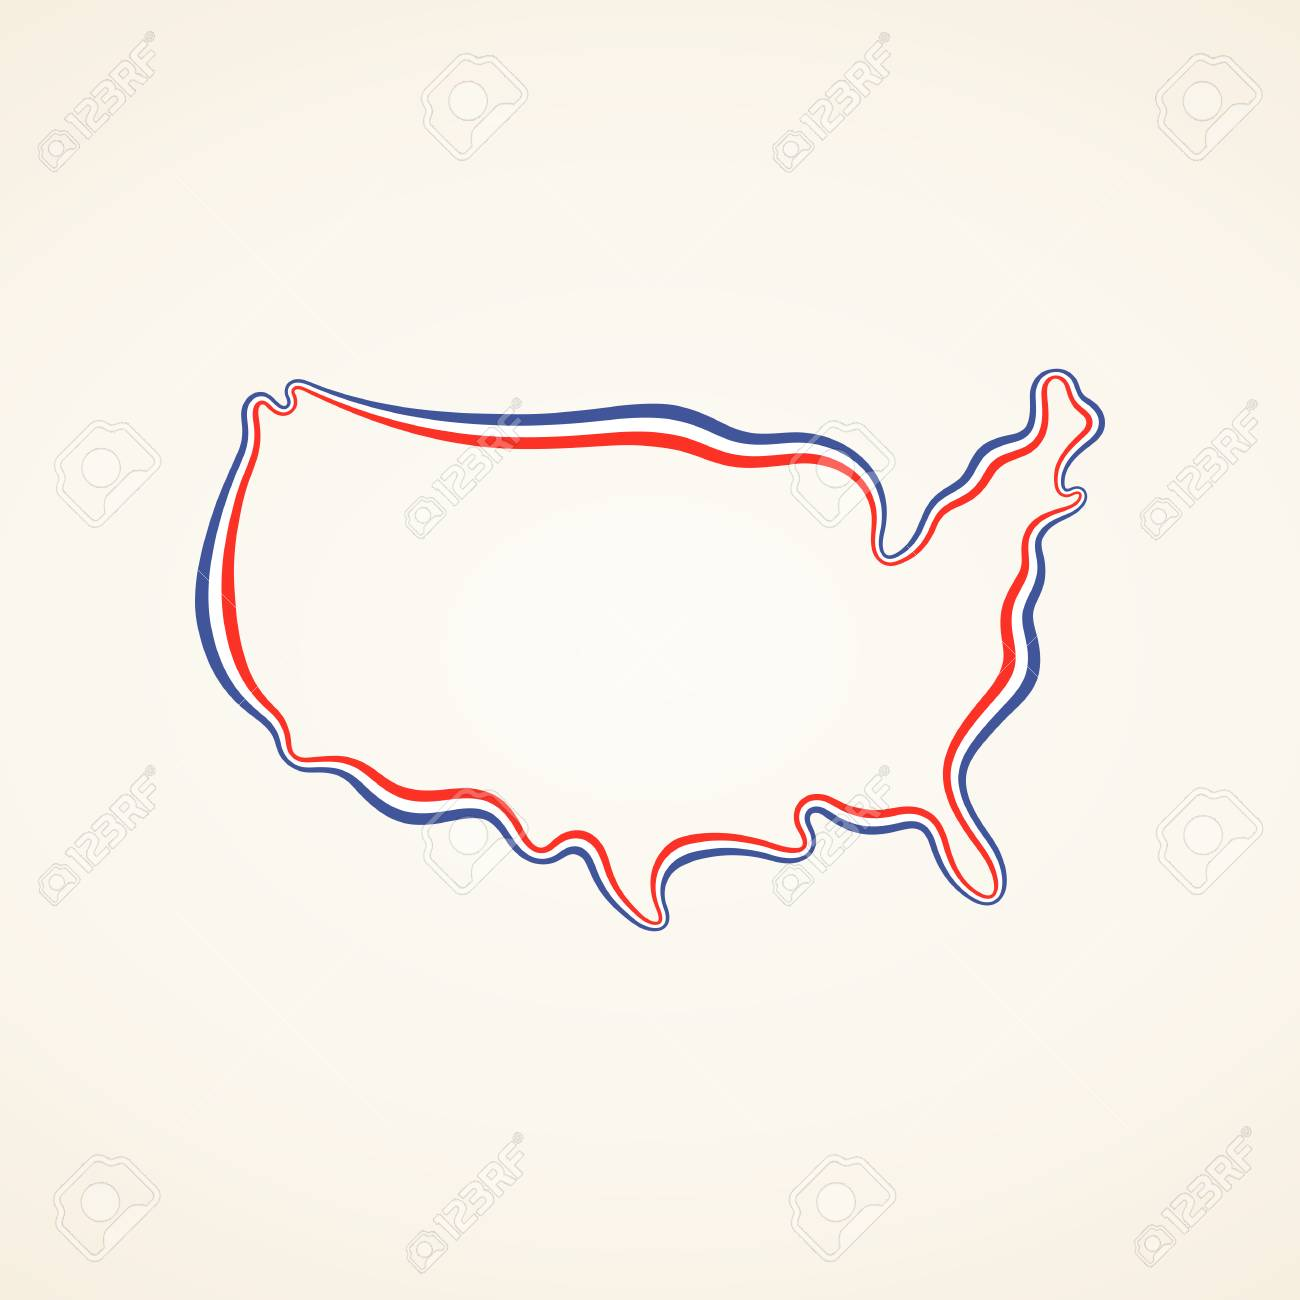 Outline map of United States marked with ribbon in colors from..